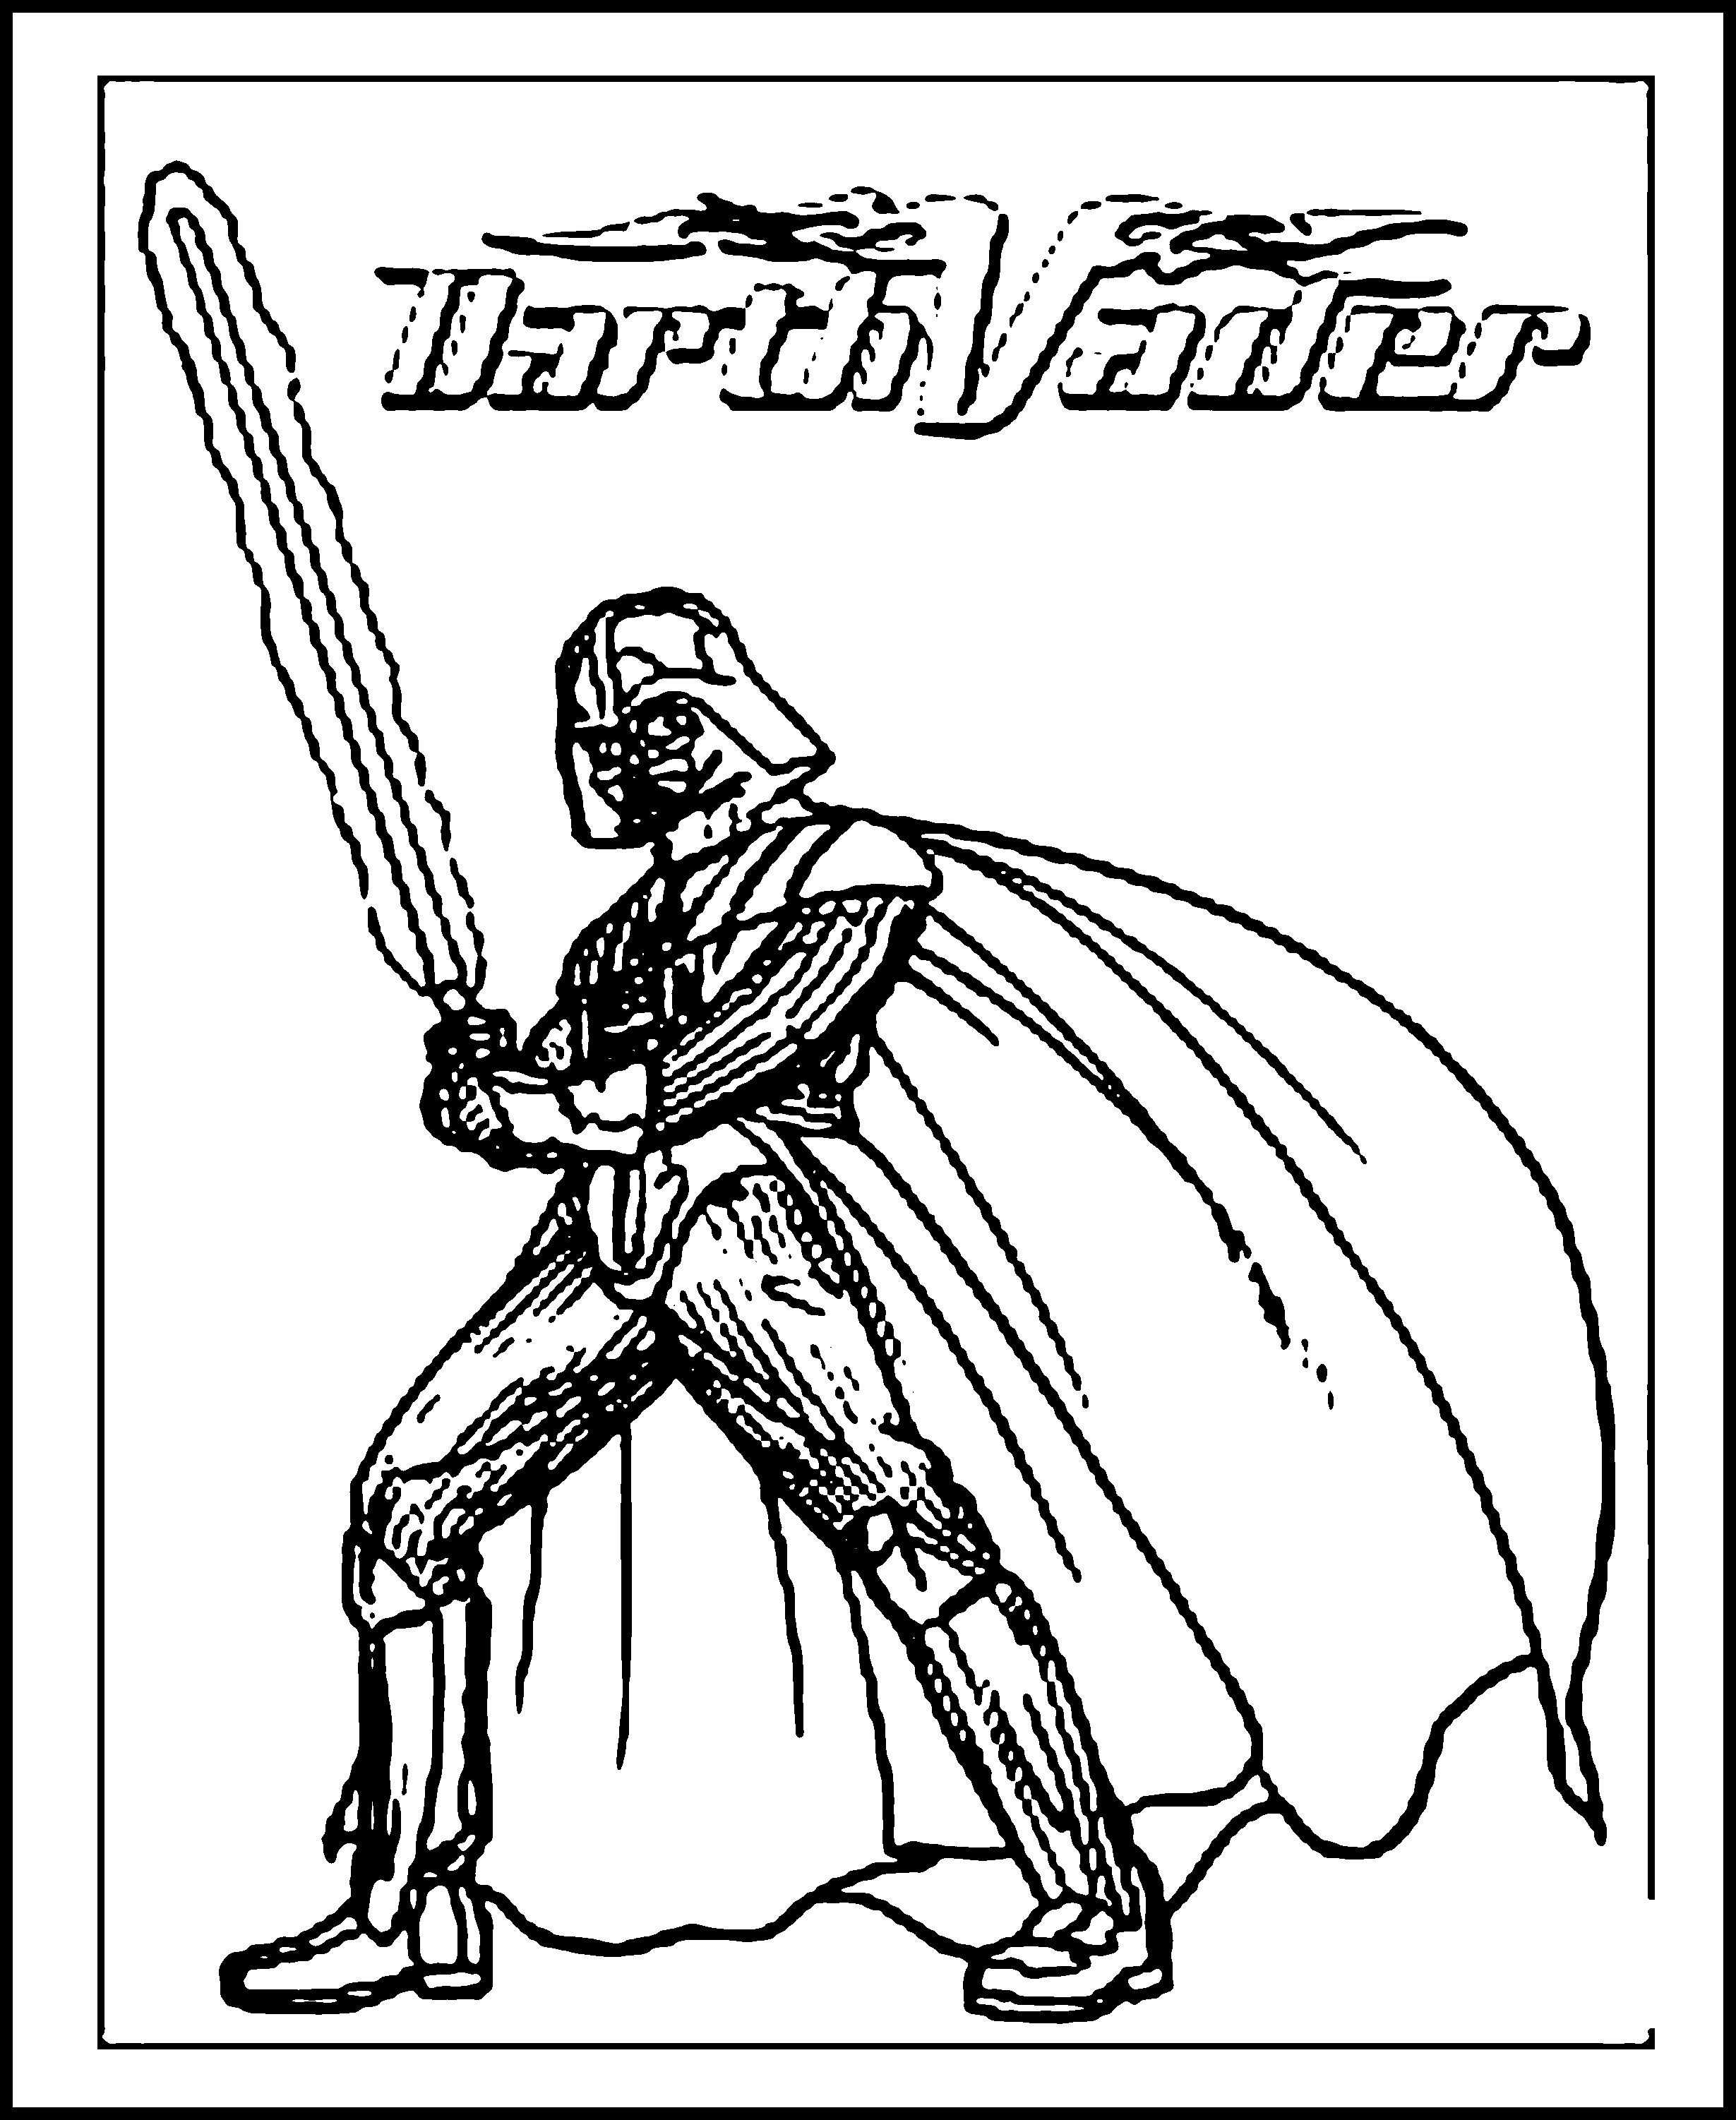 photograph regarding Star Wars Printable Coloring Pages called Star Wars Battlefront Coloring Internet pages at